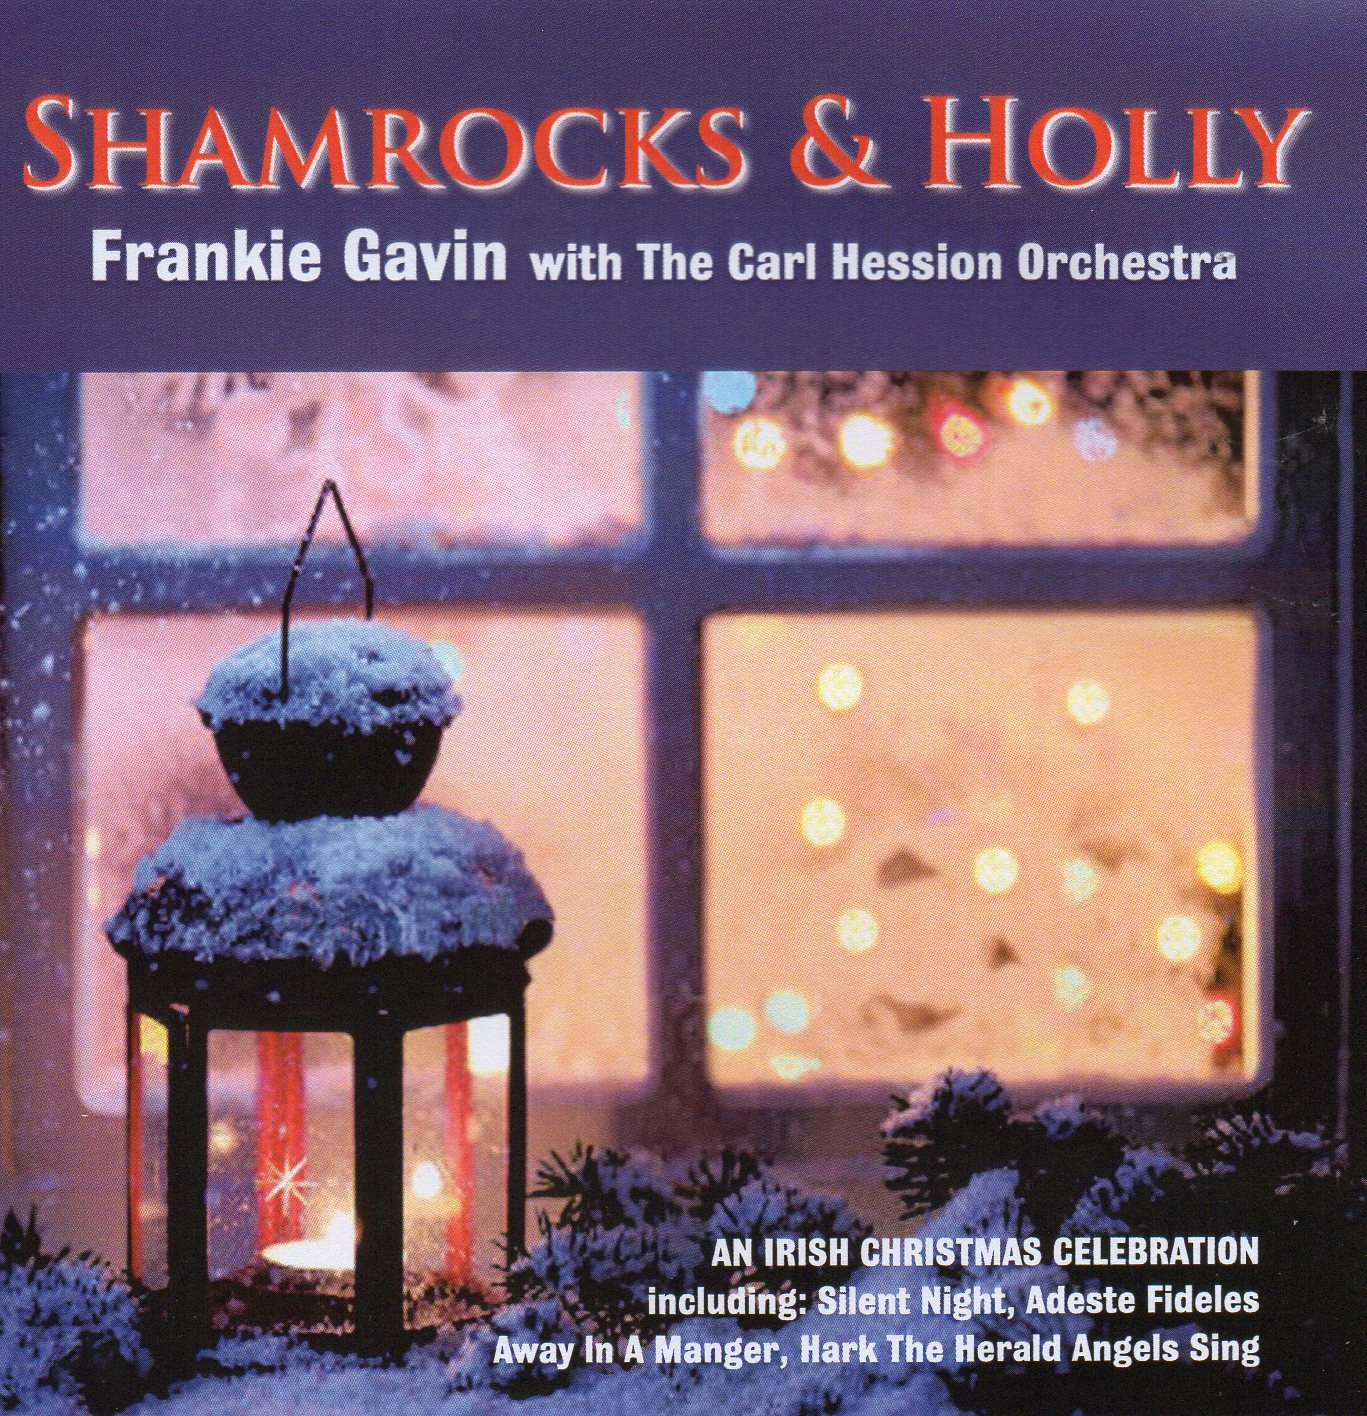 Angel From Holly's World frankie gavin with the carl hession orchestra shamrocks